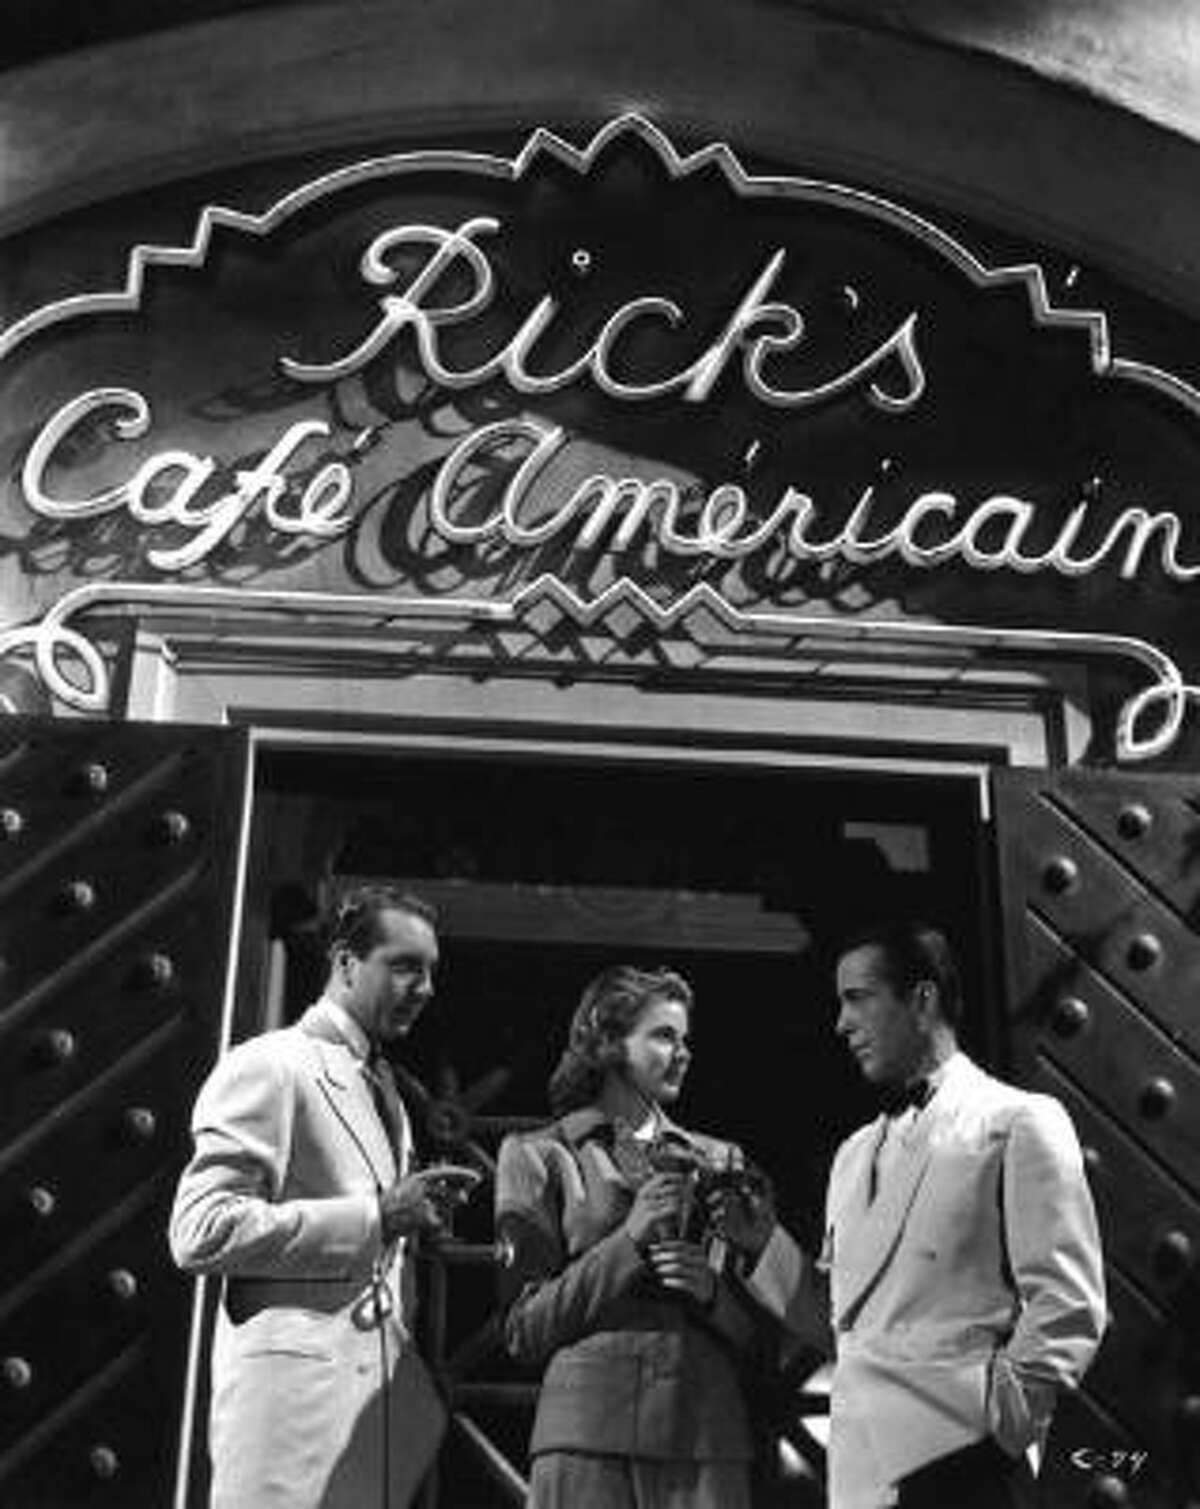 APN ADVANCE FOR SUNDAY, AUG. 27--FILE--Actors Paul Henreid, Ingrid Bergman and Humphrey Bogart, are on the set of the 1942 film 'Casablanca' in this photo, courtesy of the Wisconsin Center for Film and Theater Research. It is one of 2 million photographs in the archive at the University of Wisconsin in Madison. The facility also holds some 15,000 films, including almost 2,000 feature films released by three major Hollywood studios between 1930 and 1950.